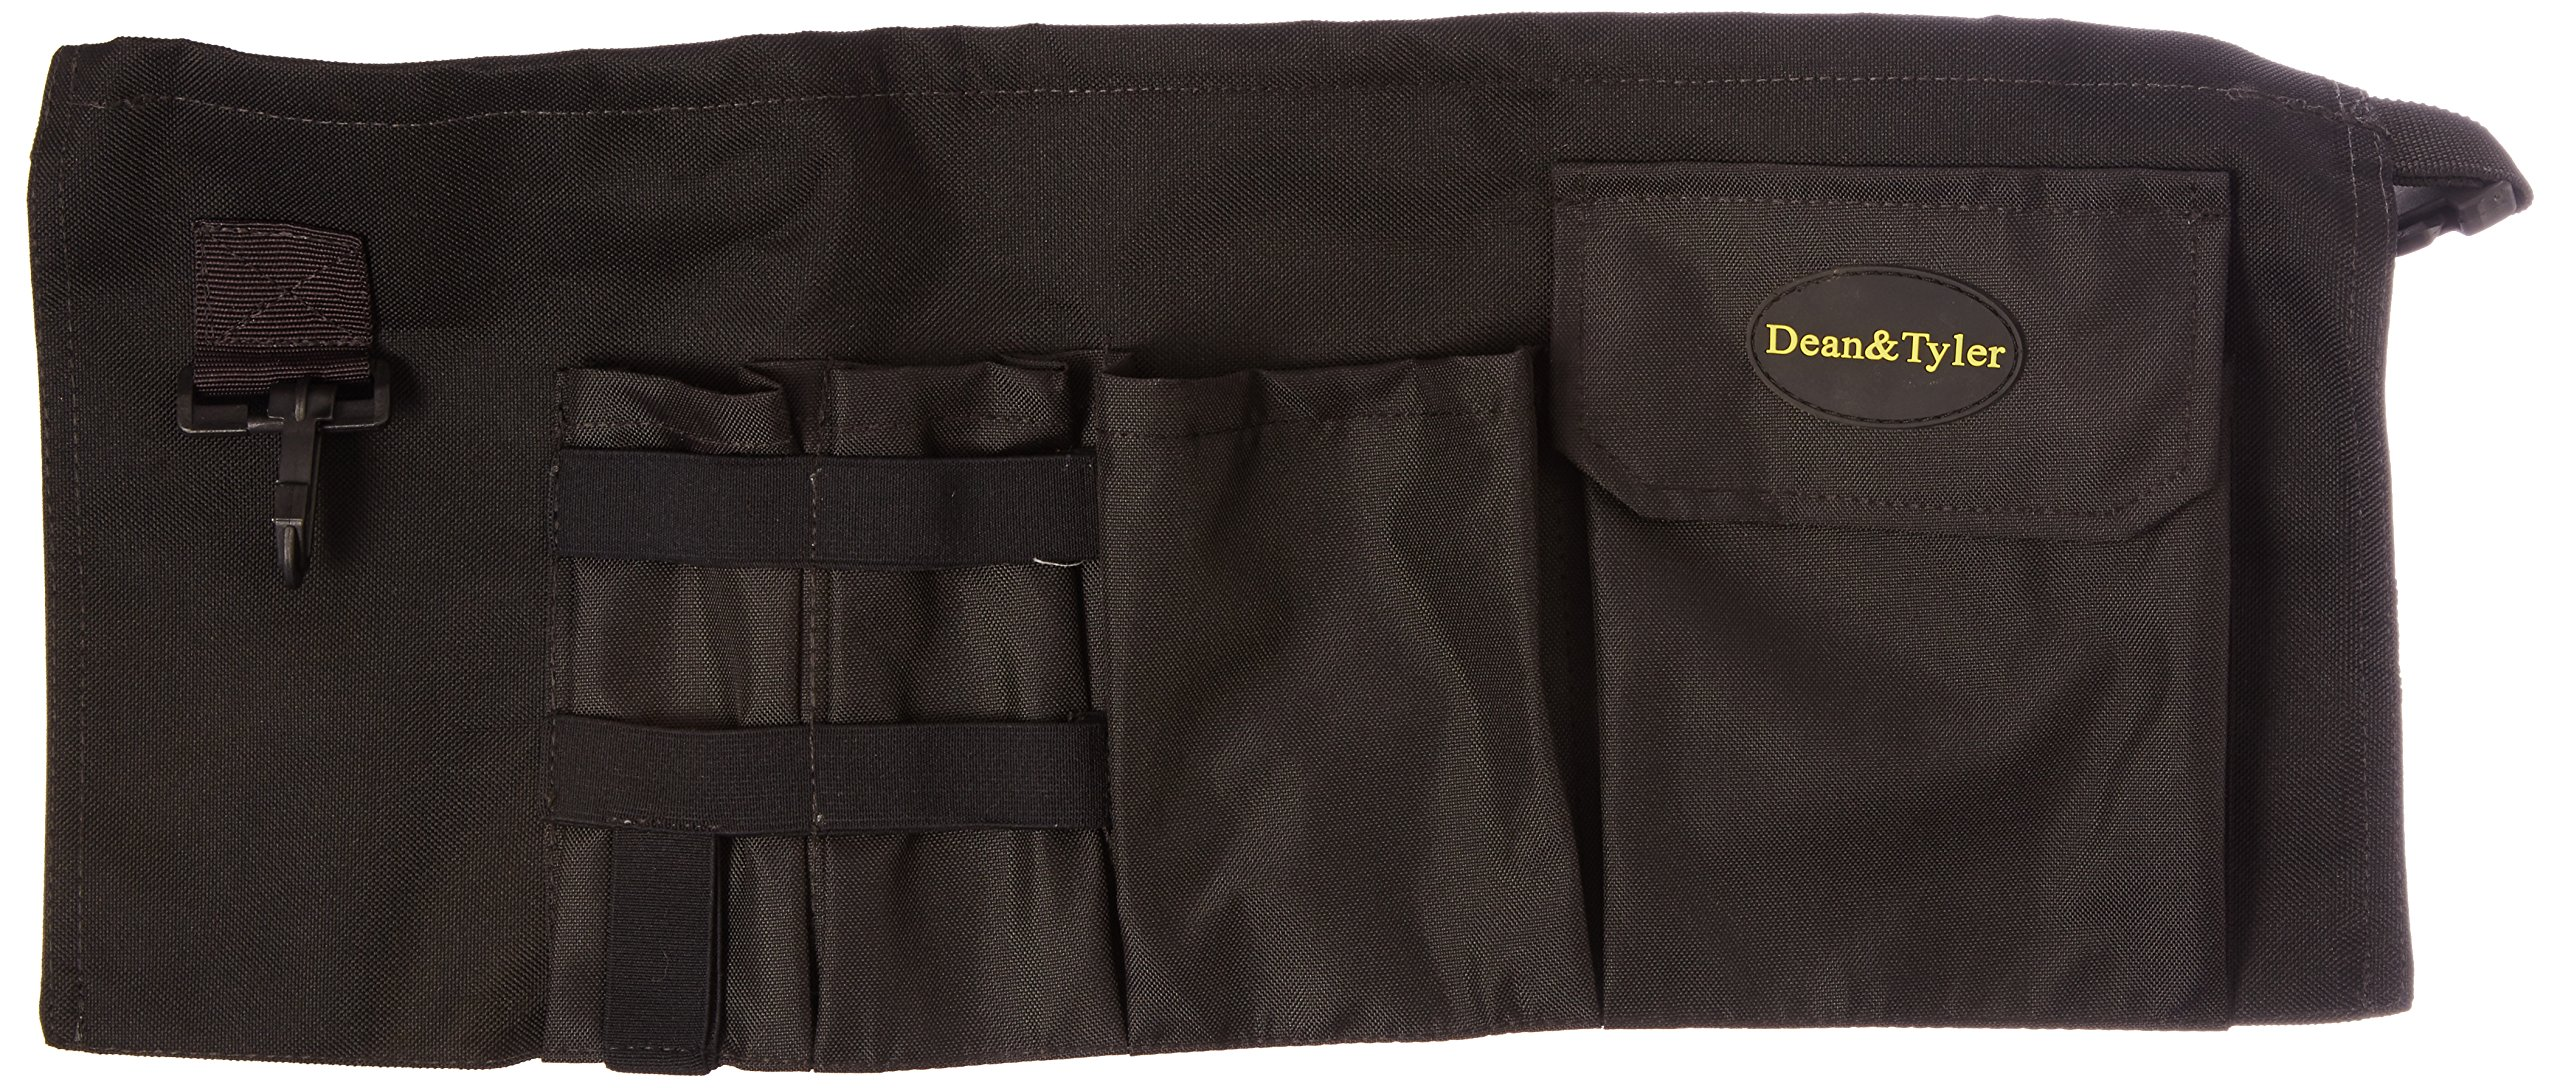 Dean and Tyler Training Pouch - Neoprene Nylon - Size: Large by Dean & Tyler